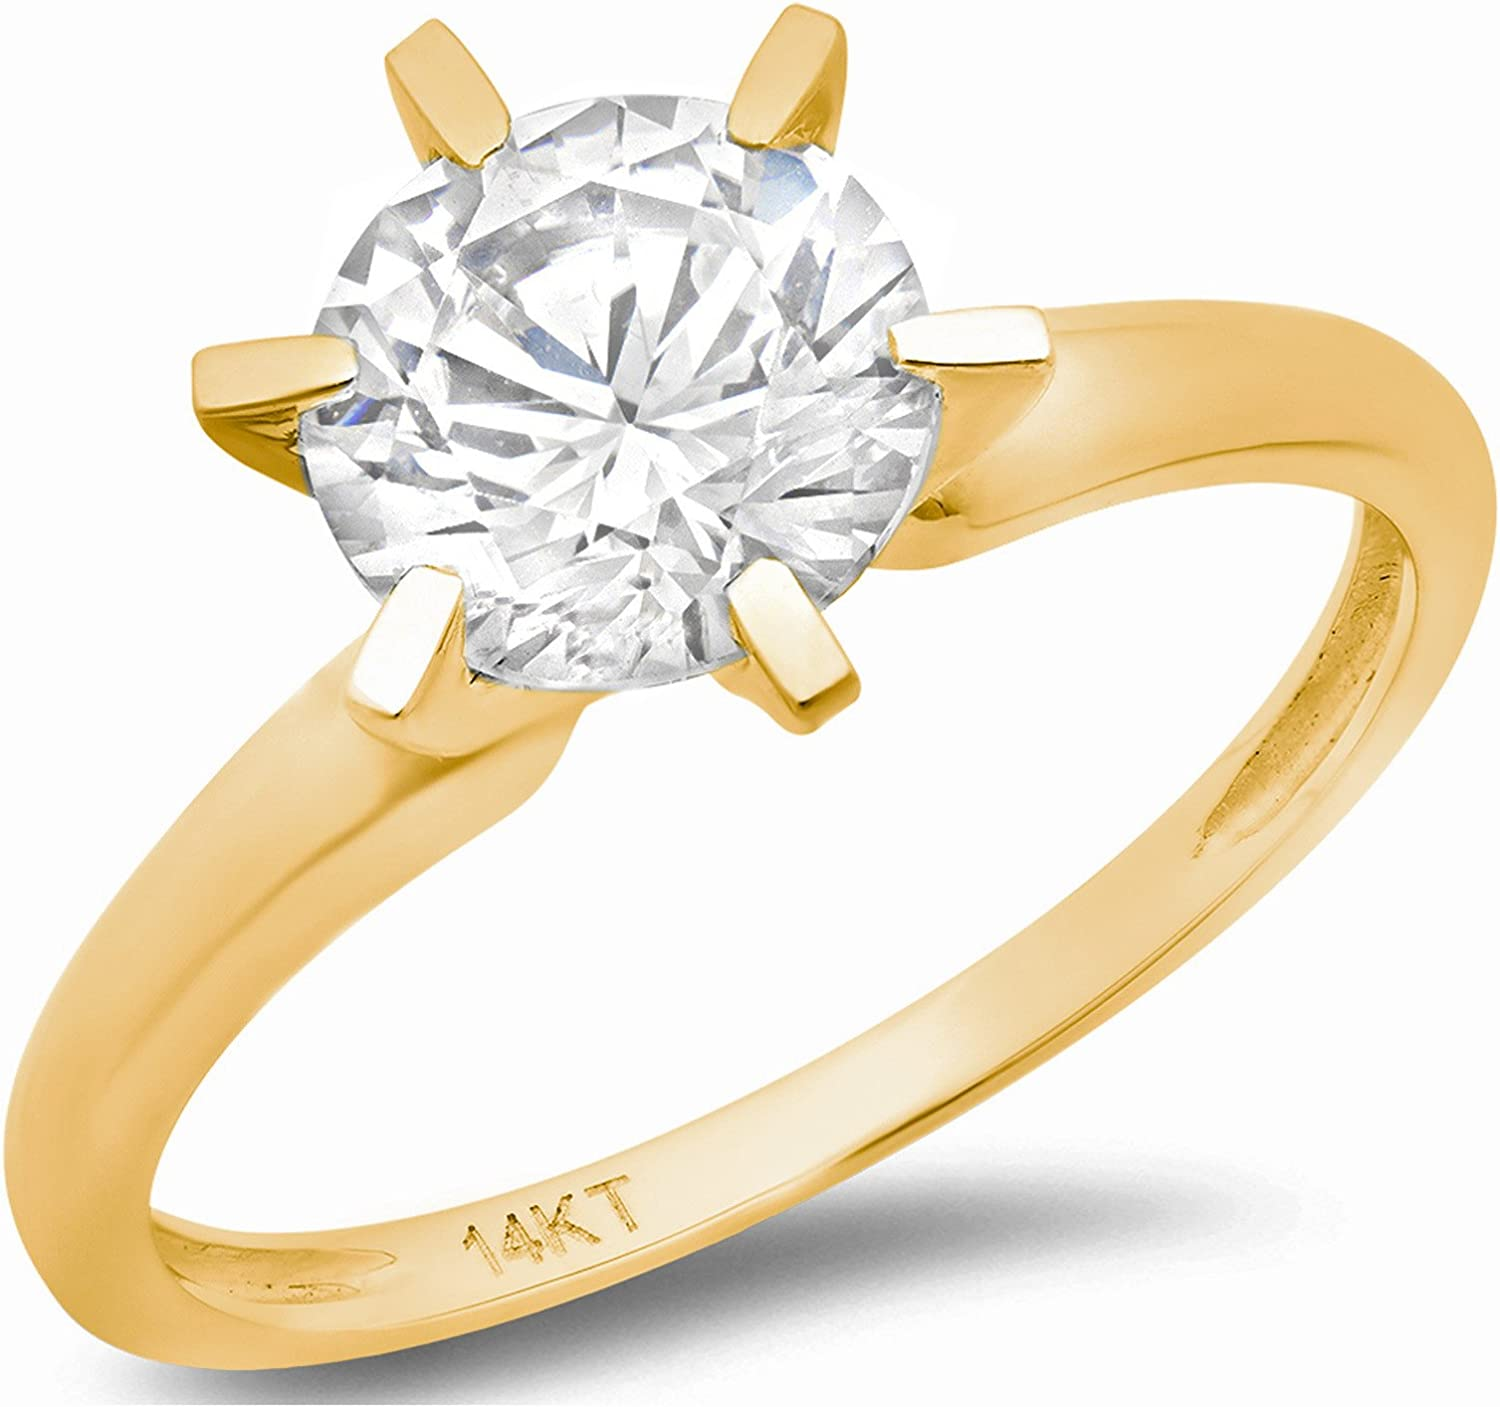 Marquise Diamond Solitaire Ring In 14k Yellow Gold Dainty